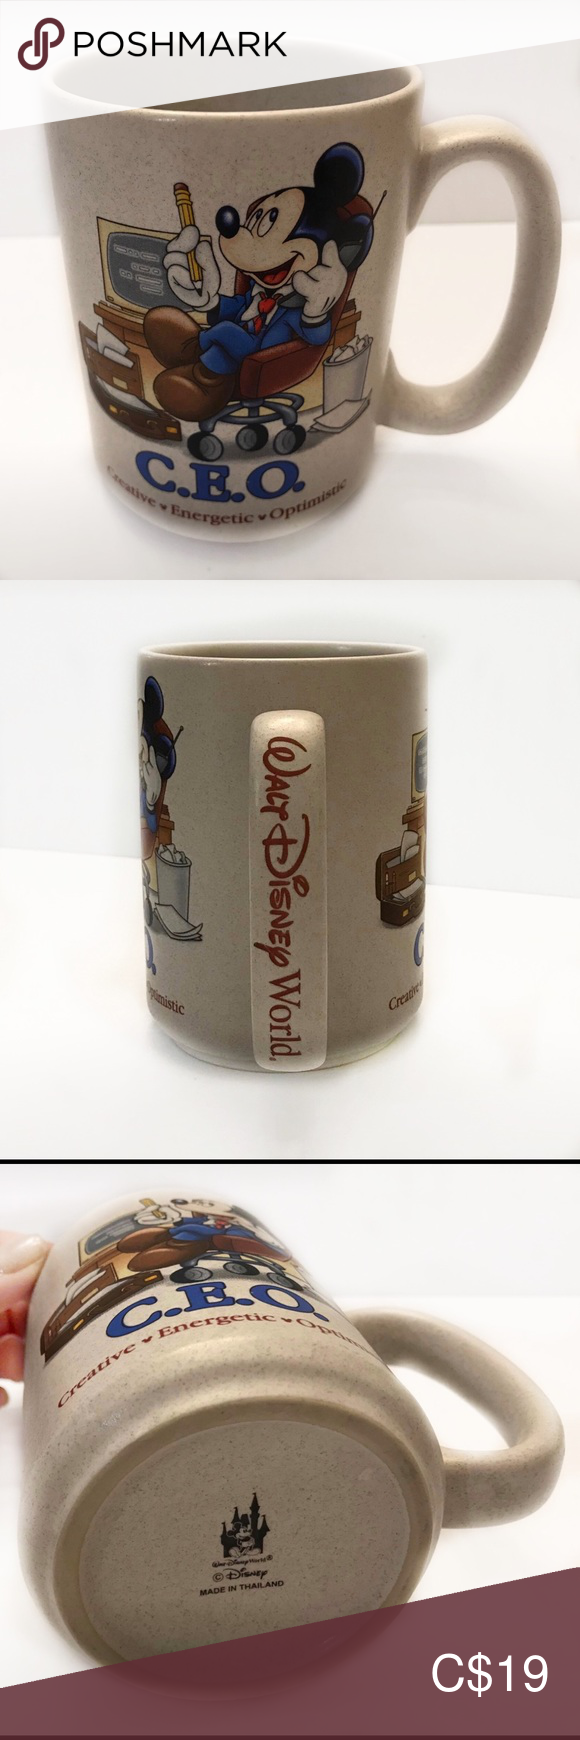 MICKEY C.E.O. (Creative, Energetic, Optimistic) Love Mickey? Are a CEO? This is a collectors mug as it is very limited (and possibly from a special 2005 Boss' Day promotion at Disney World) in availability in resale.  In excellent condition - possibly never used as there is NO staining in the mug, nor scratches or marks. Disney Kitchen Coffee & Tea Accessories #disneykitchen